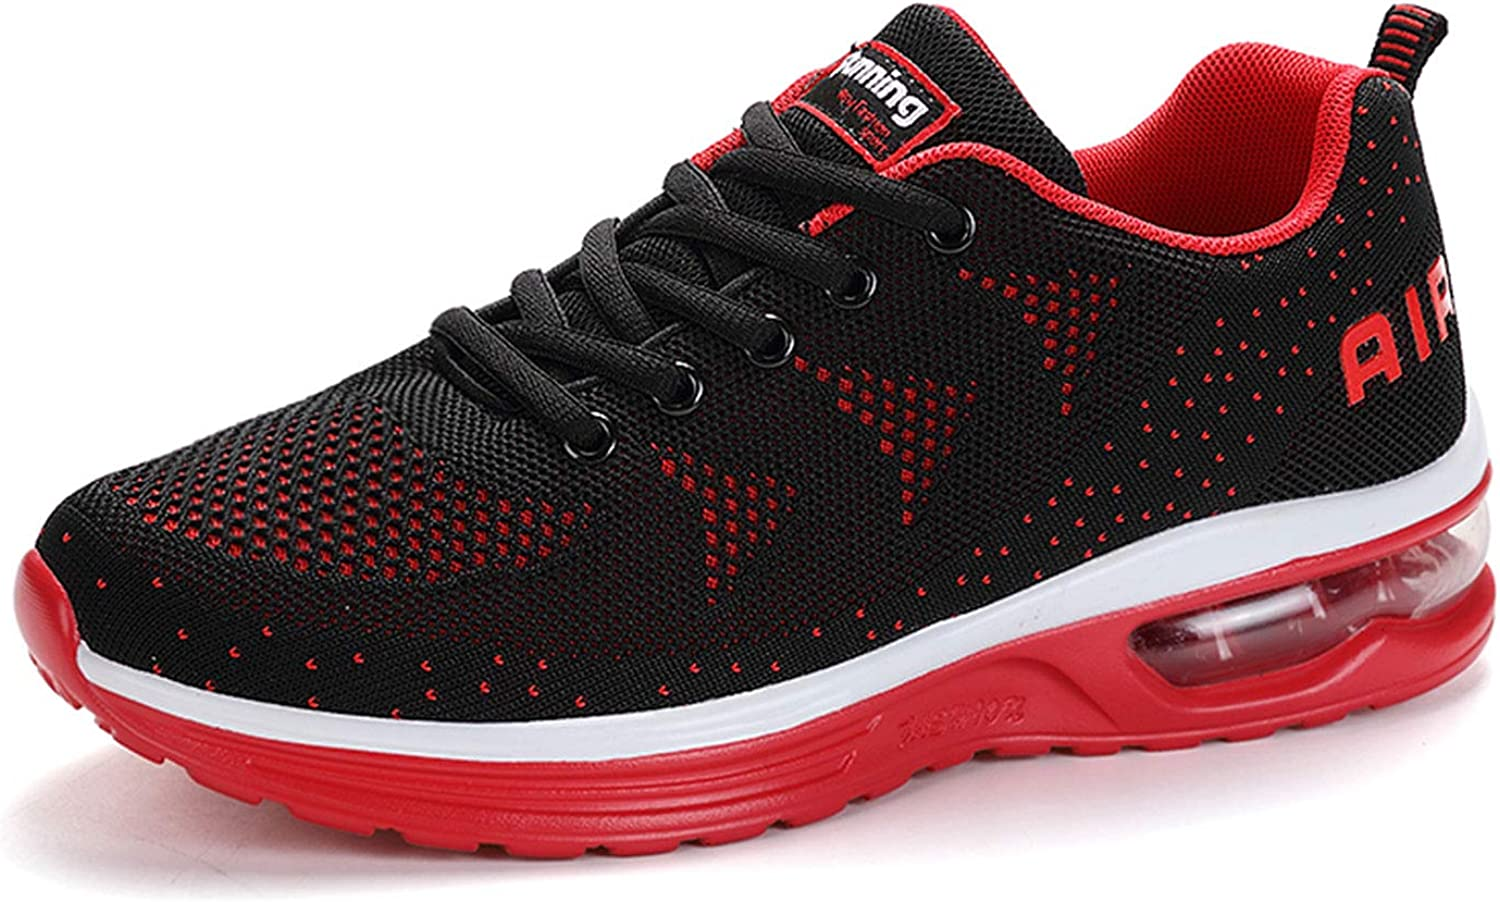 MARITONY Running shoes Sneakers for Men, Comfortable Casual Sports Training Hiking Walking shoes